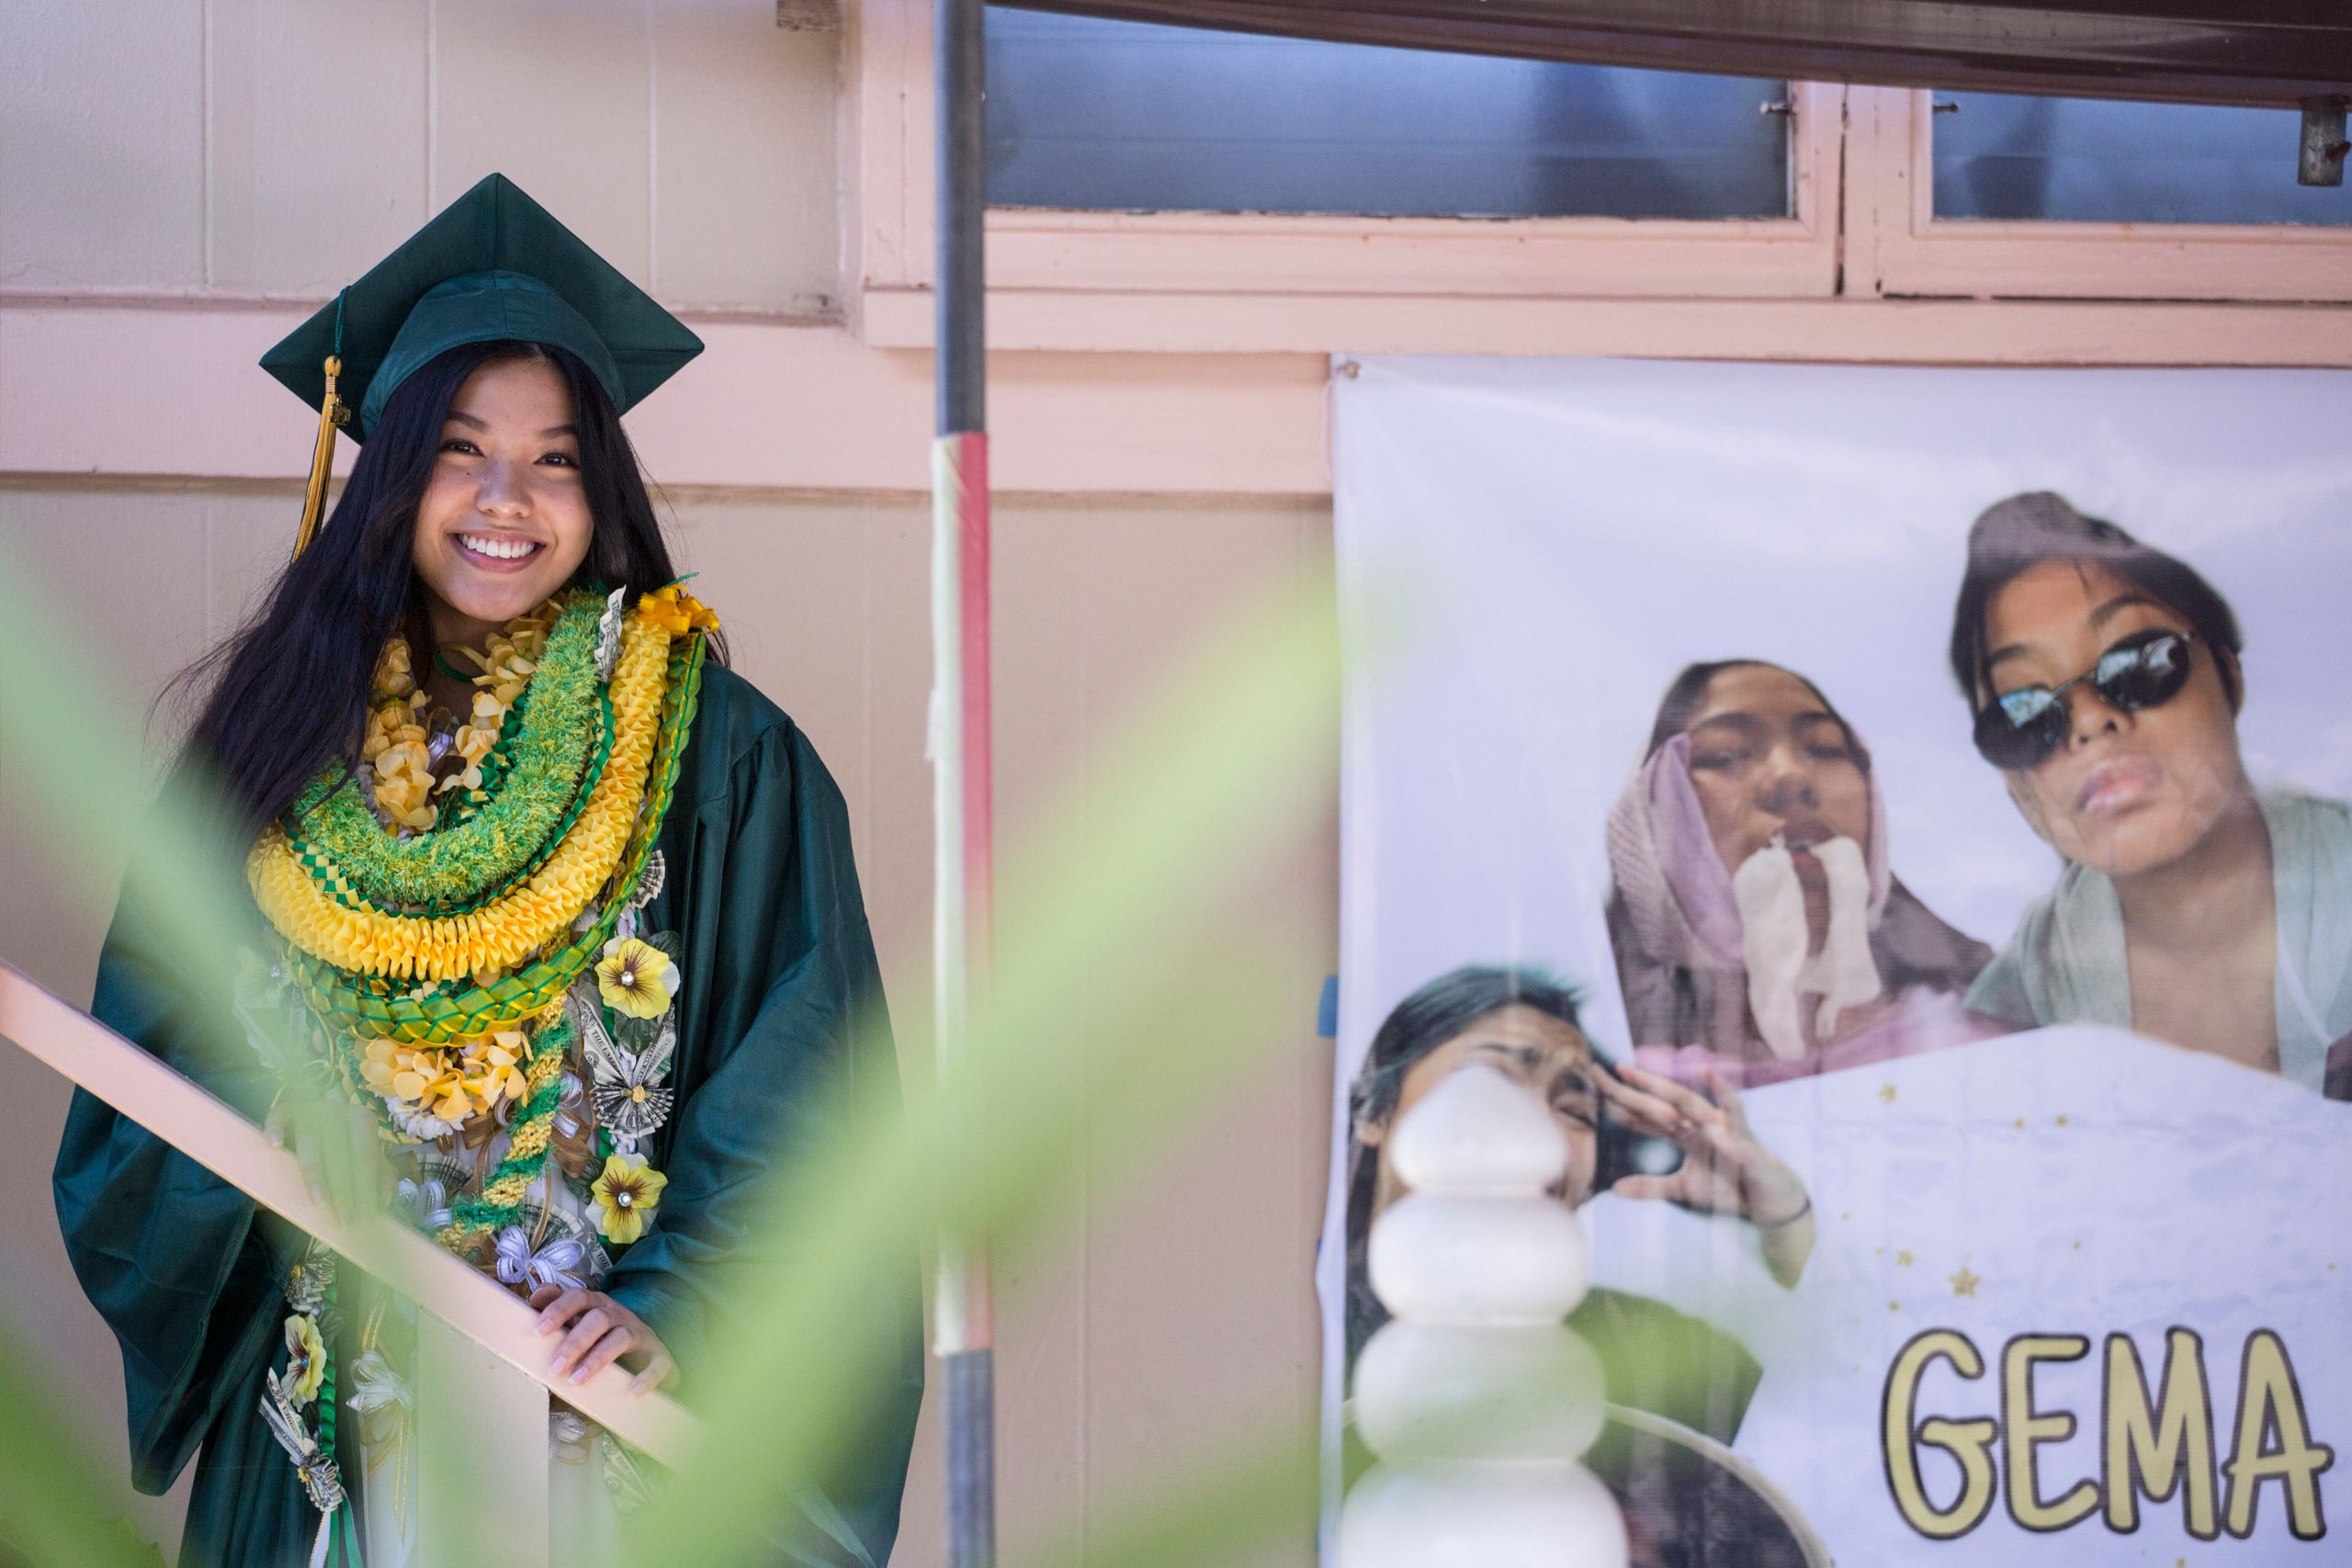 Gemalyn Yutob, a Leilehua High School graduate, found her drive-by graduation a way to stay positive amid the pandemic.